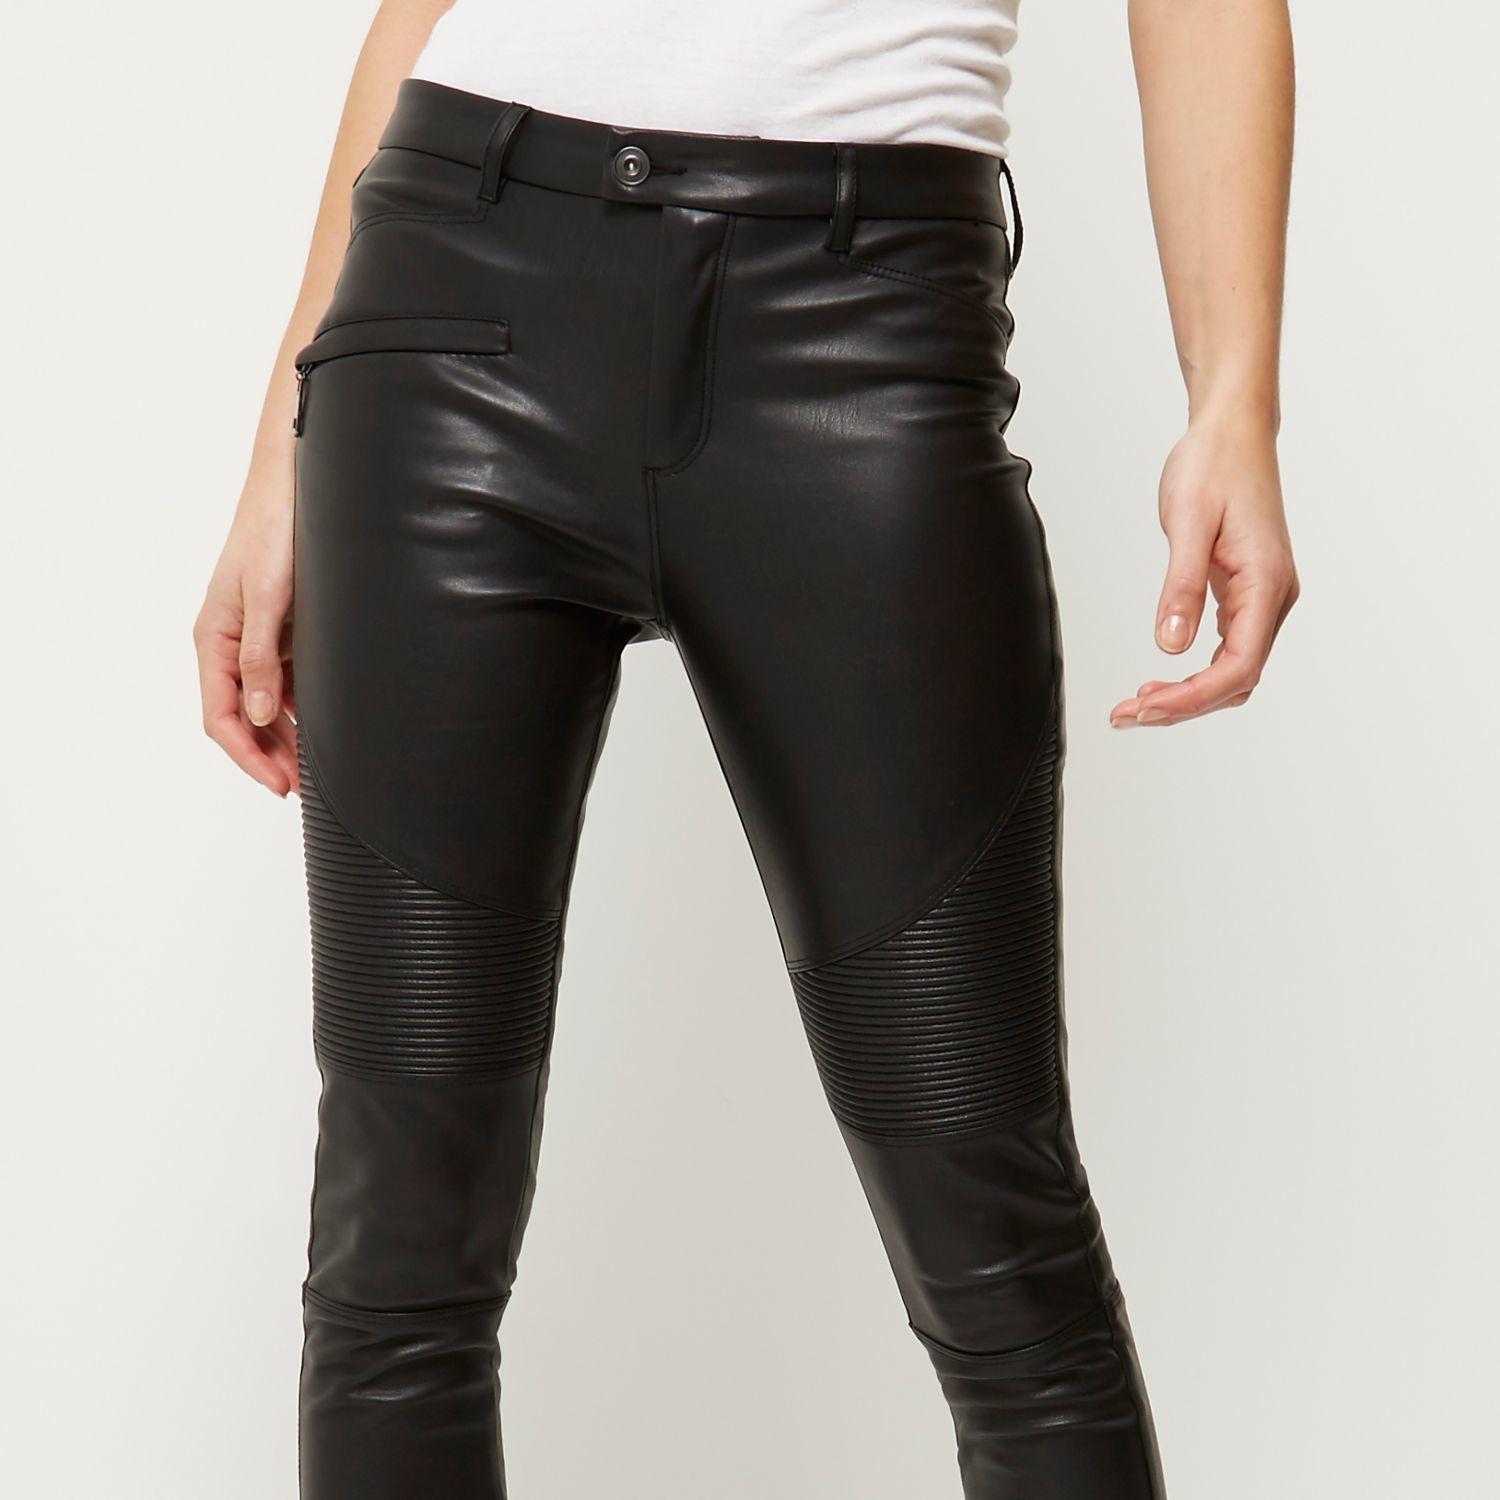 96313fc150b6 River Island Black Leather-look Biker Skinny Trousers in Gray - Lyst